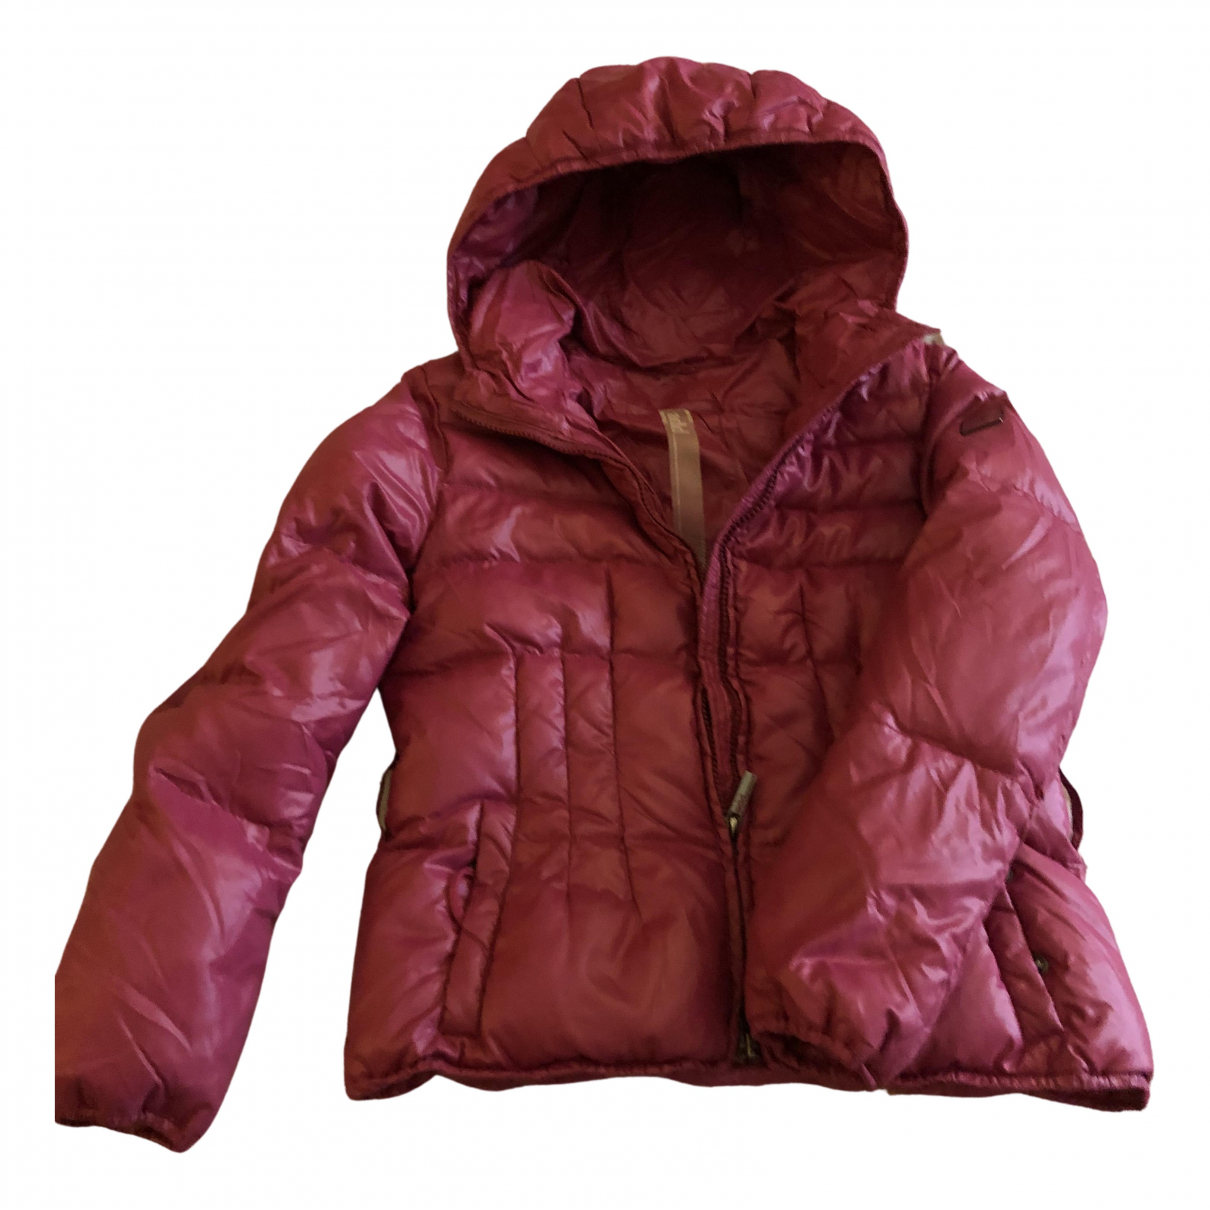 Add N jacket & coat for Kids 10 years - until 56 inches UK